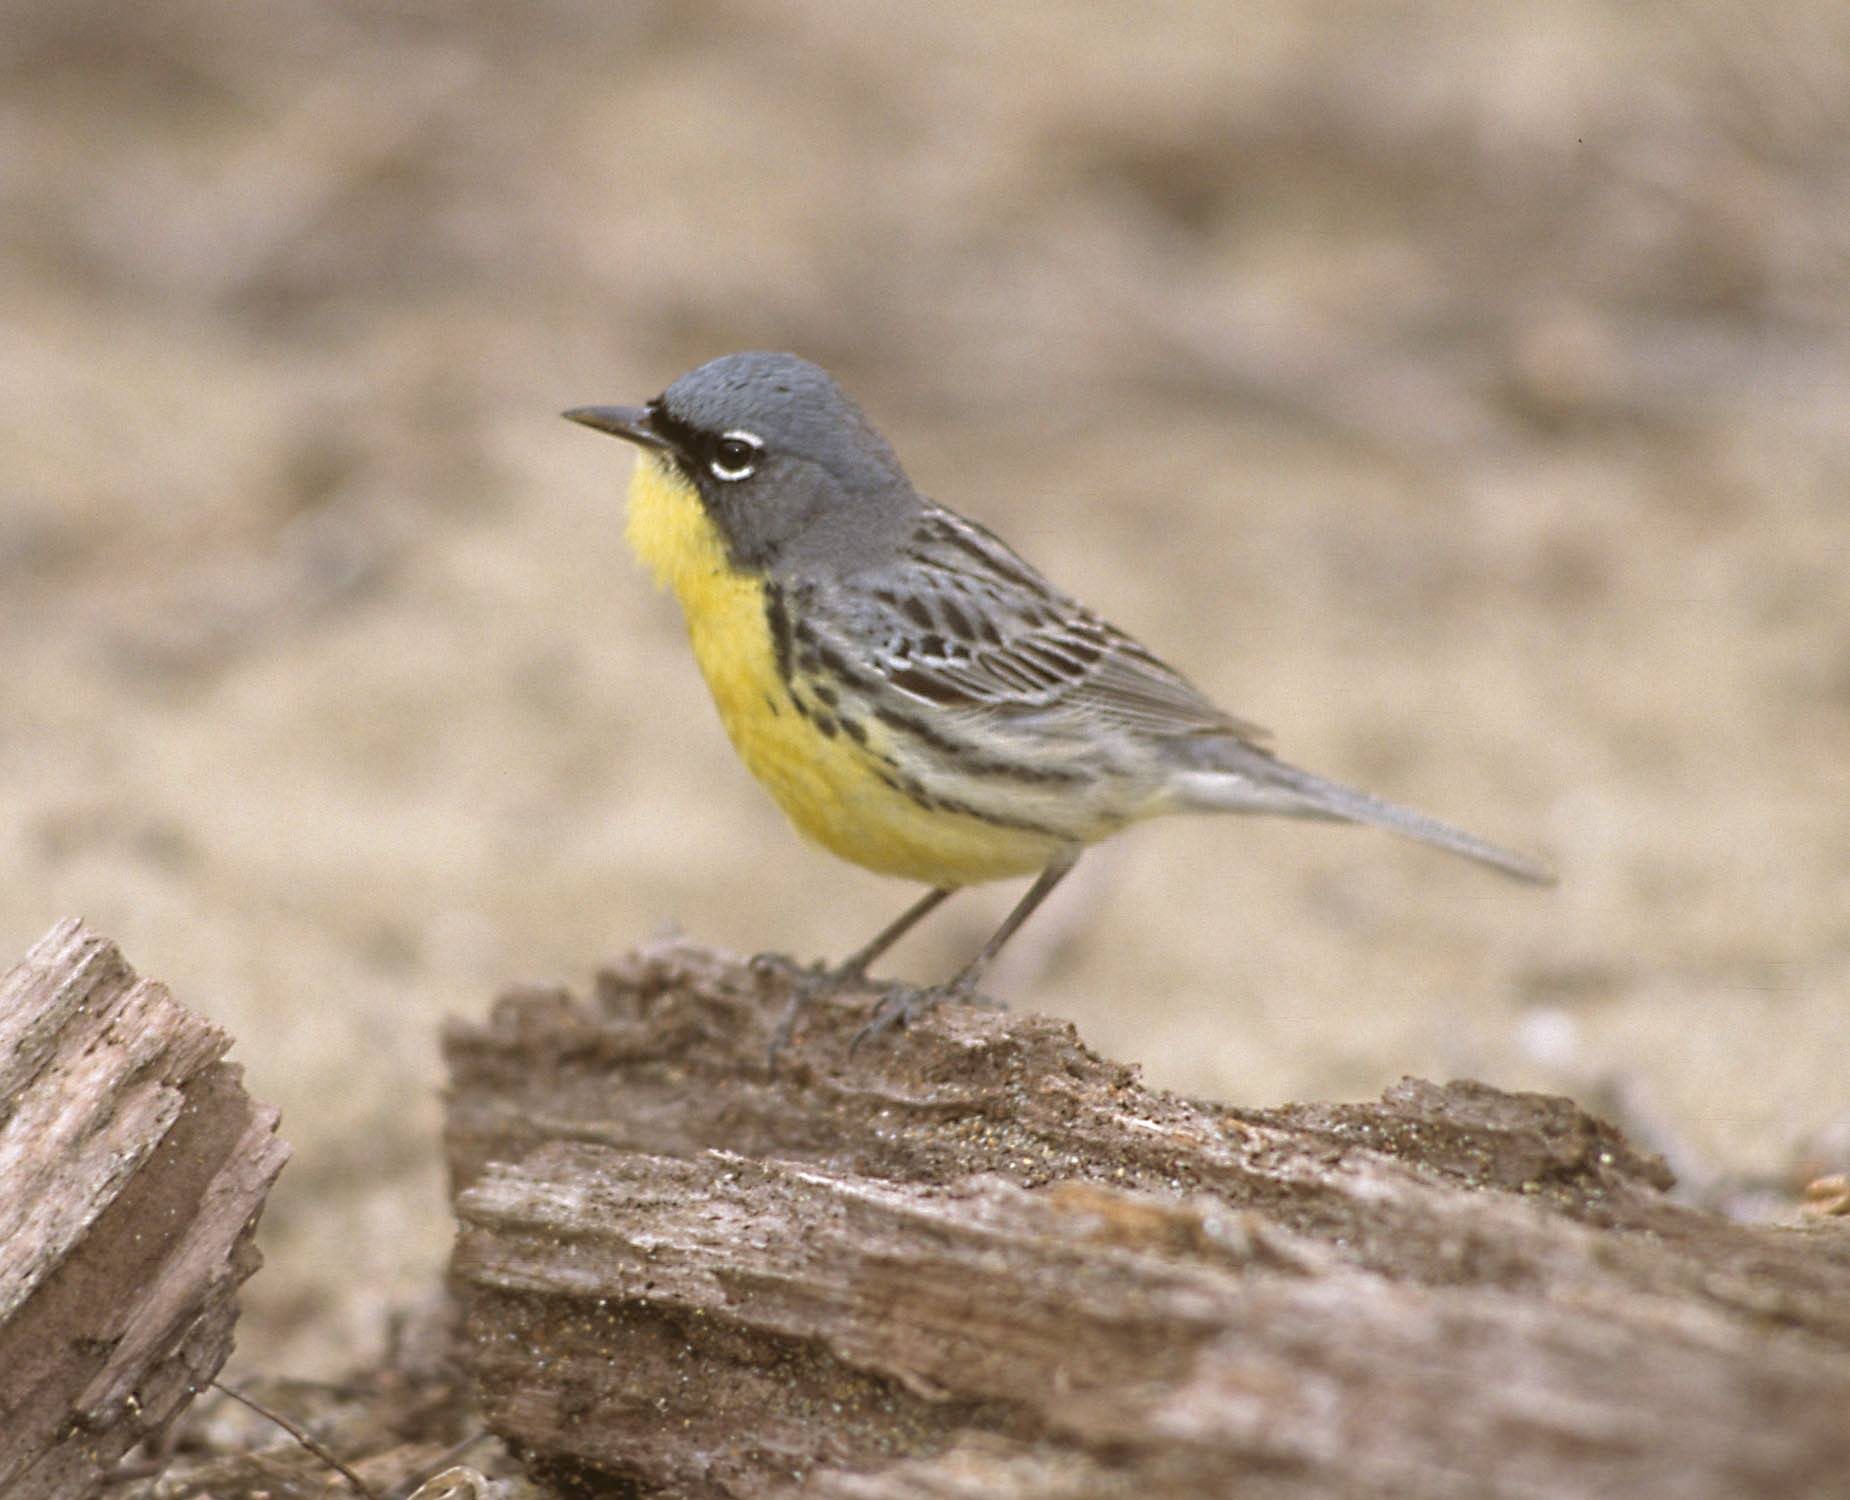 Thousands Of Adorable Jungle Songbirds Will Be Making Their Way Through Ohio In May